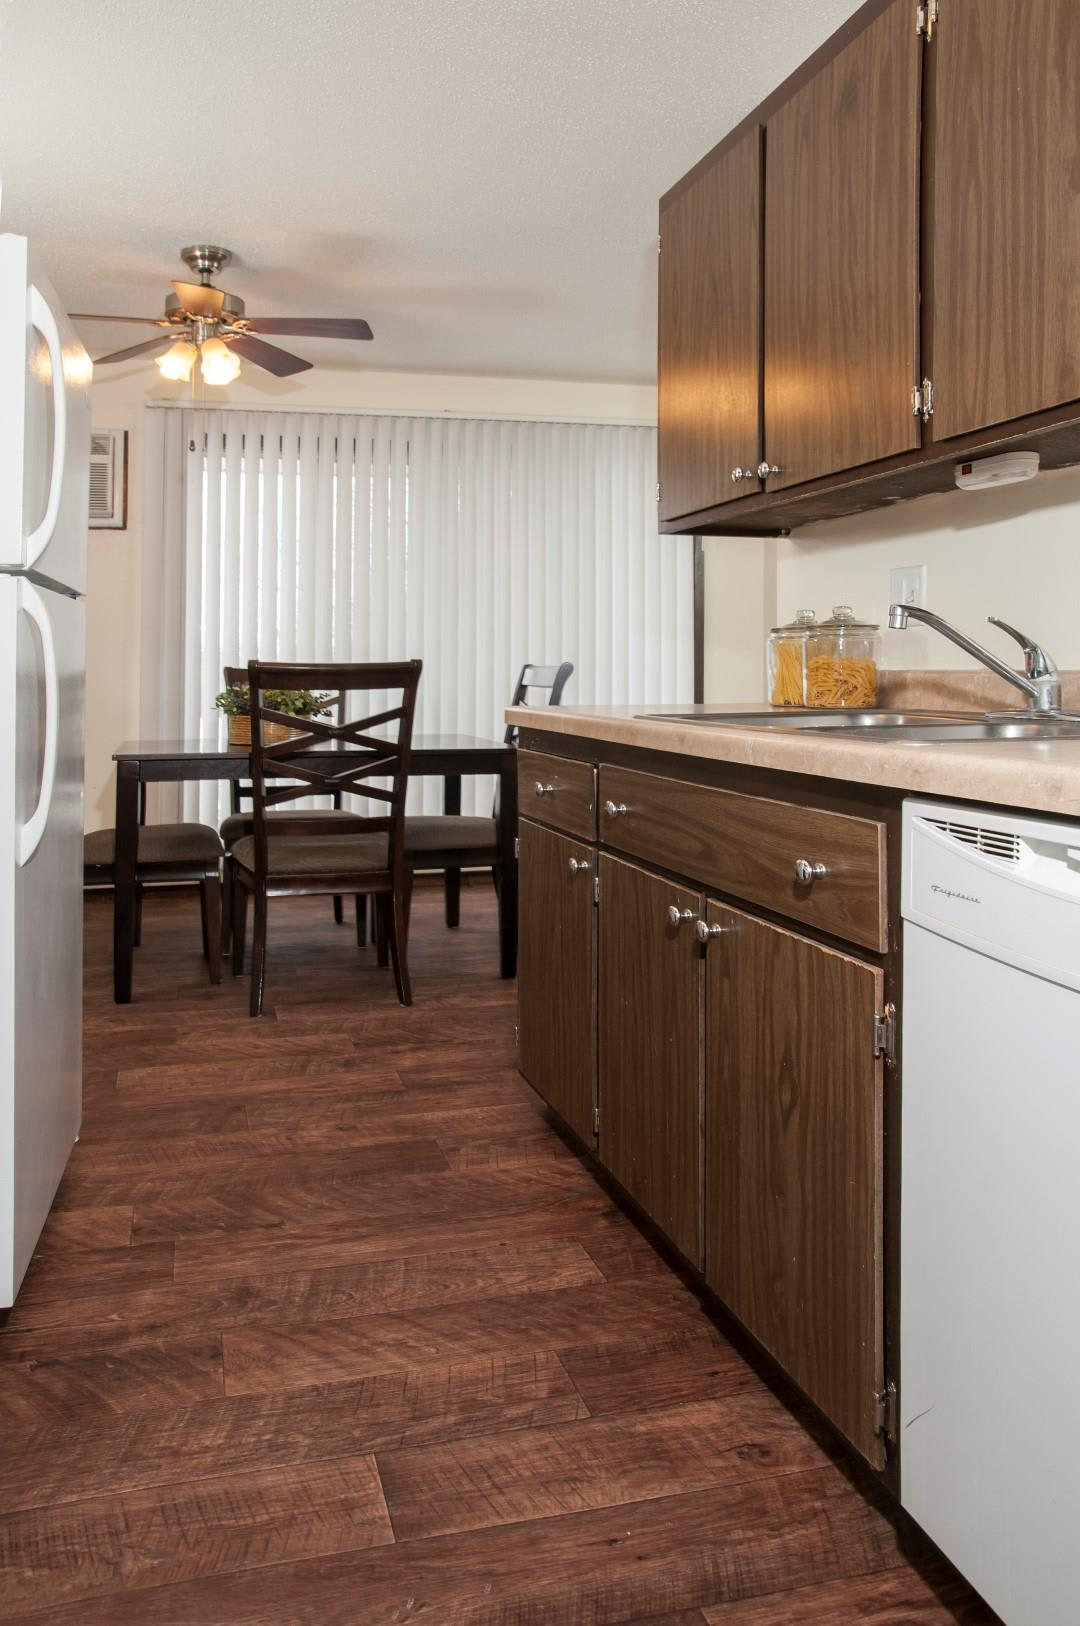 Burnsville Parkway Apartments Kitchen with Dark Wood Cabinetry and White Appliances